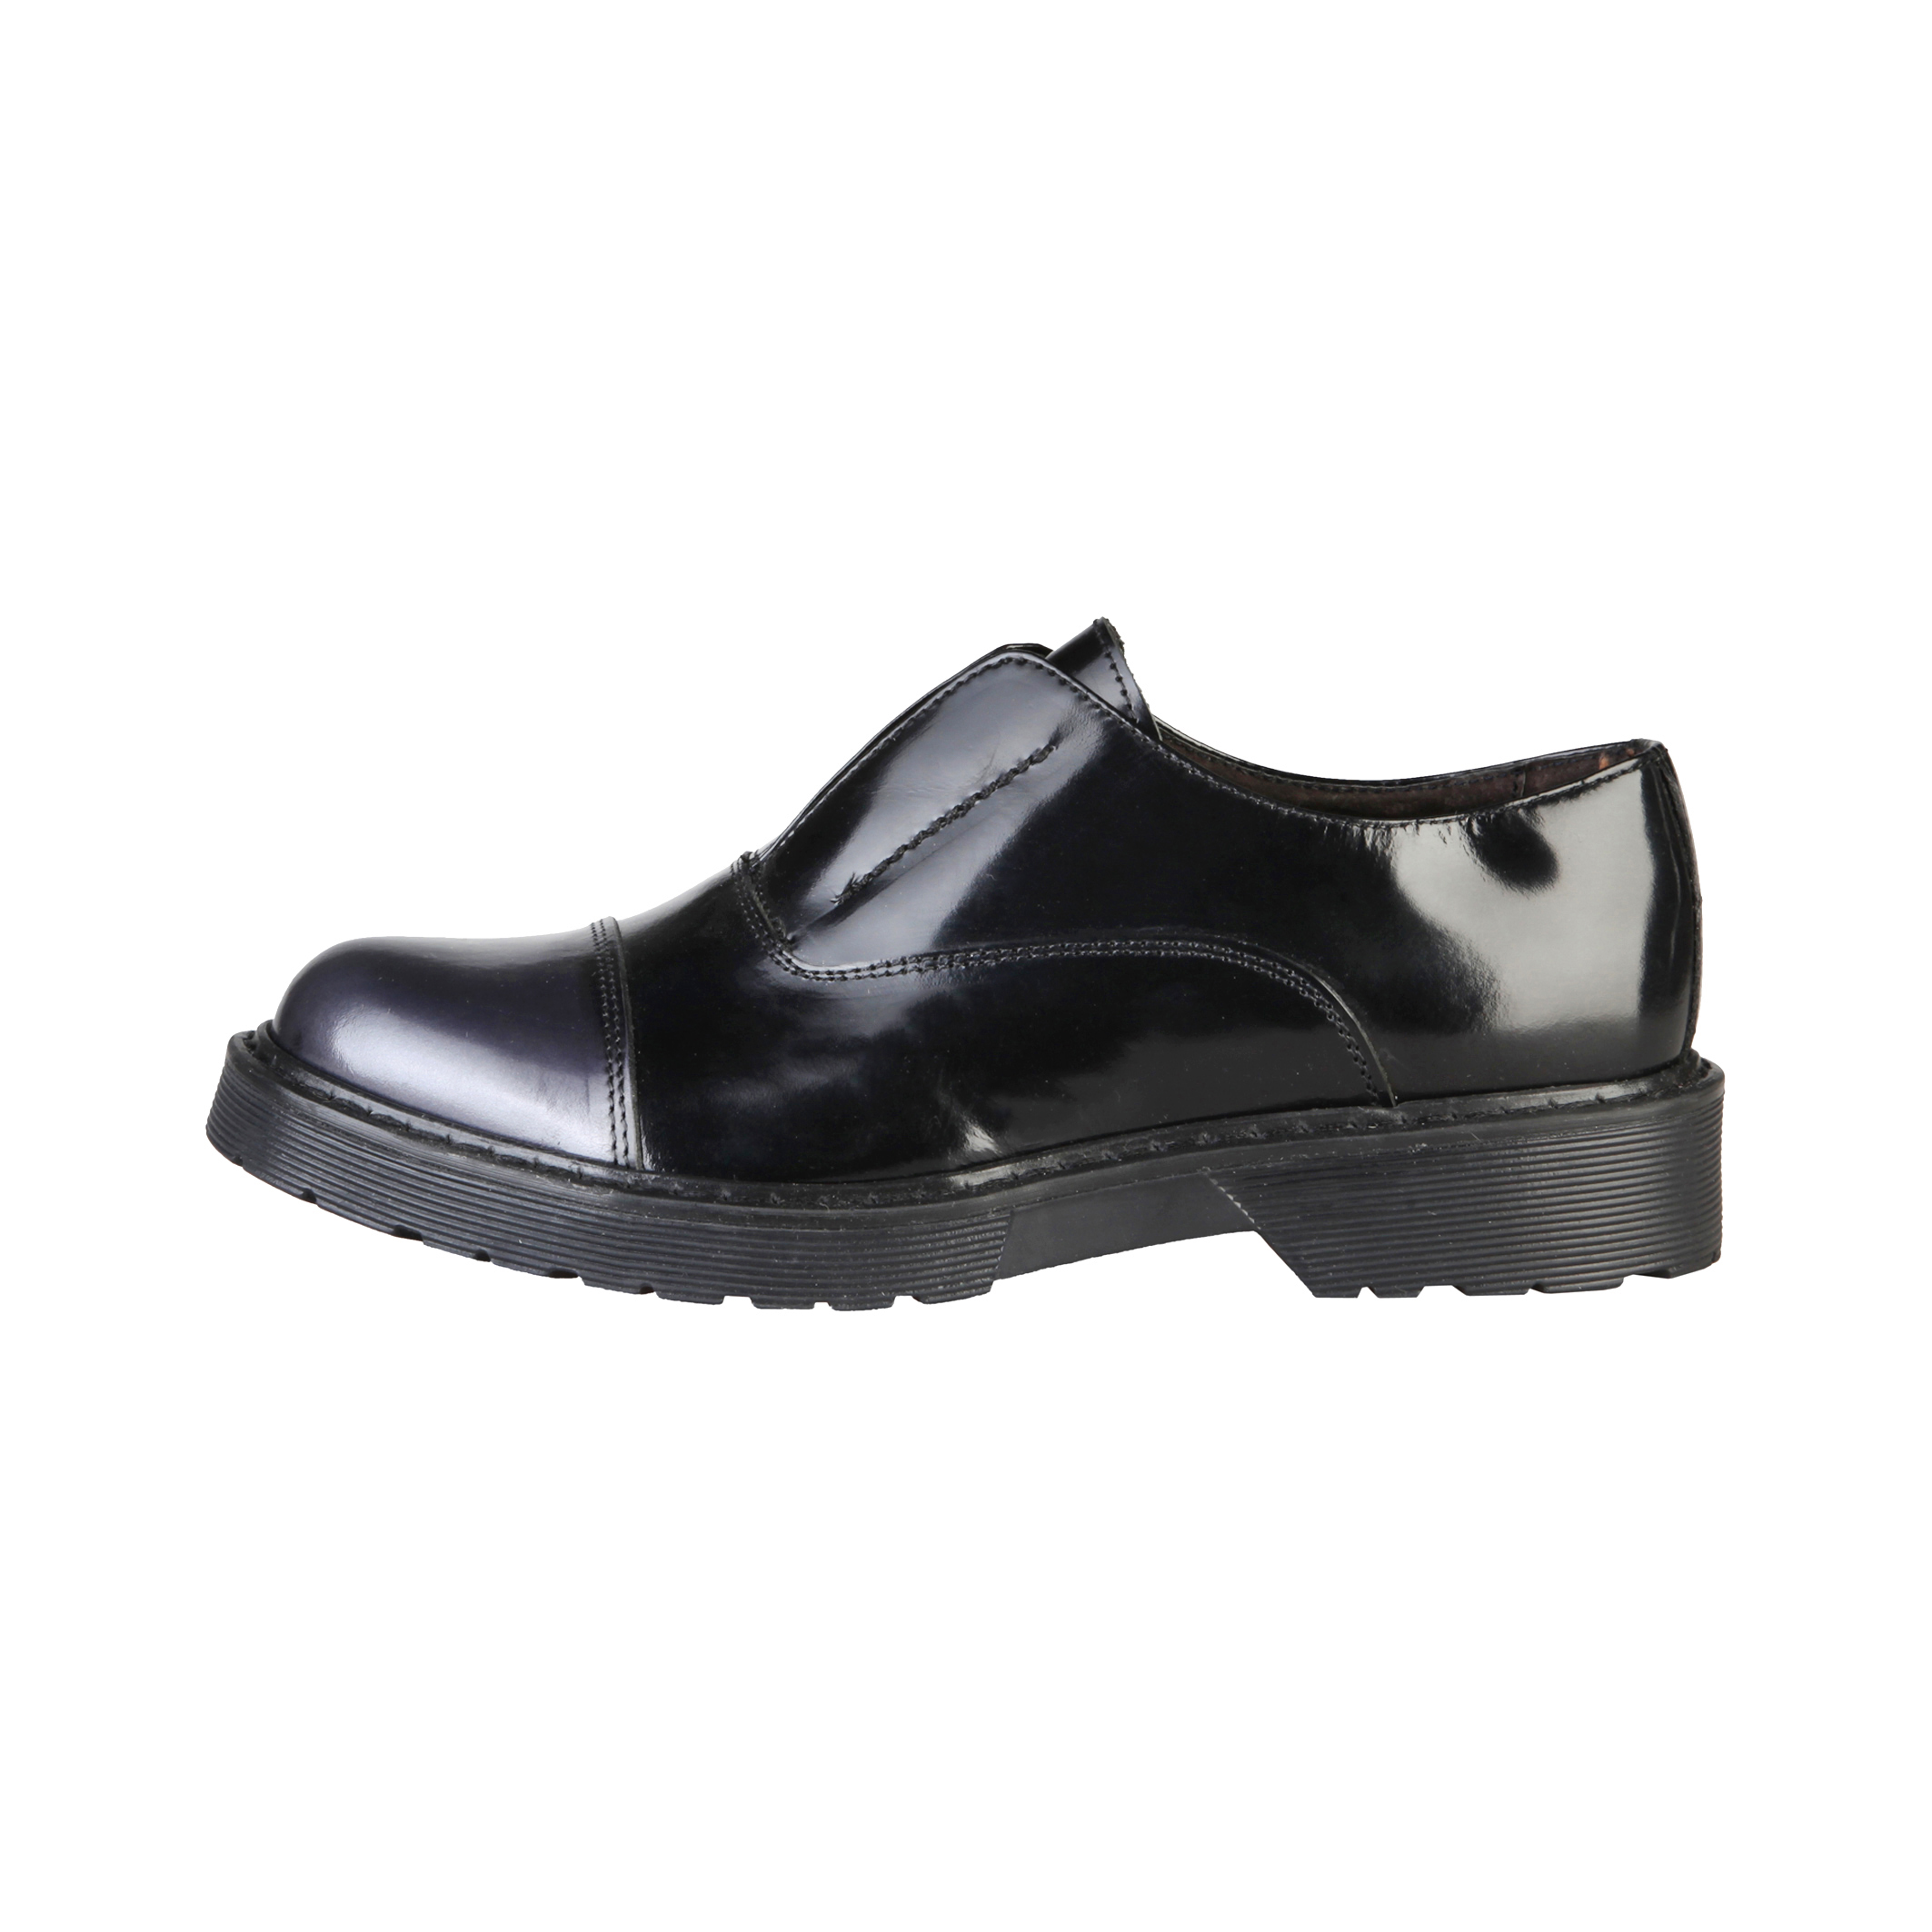 Chaussures  Ana Lublin LILLEMOR black